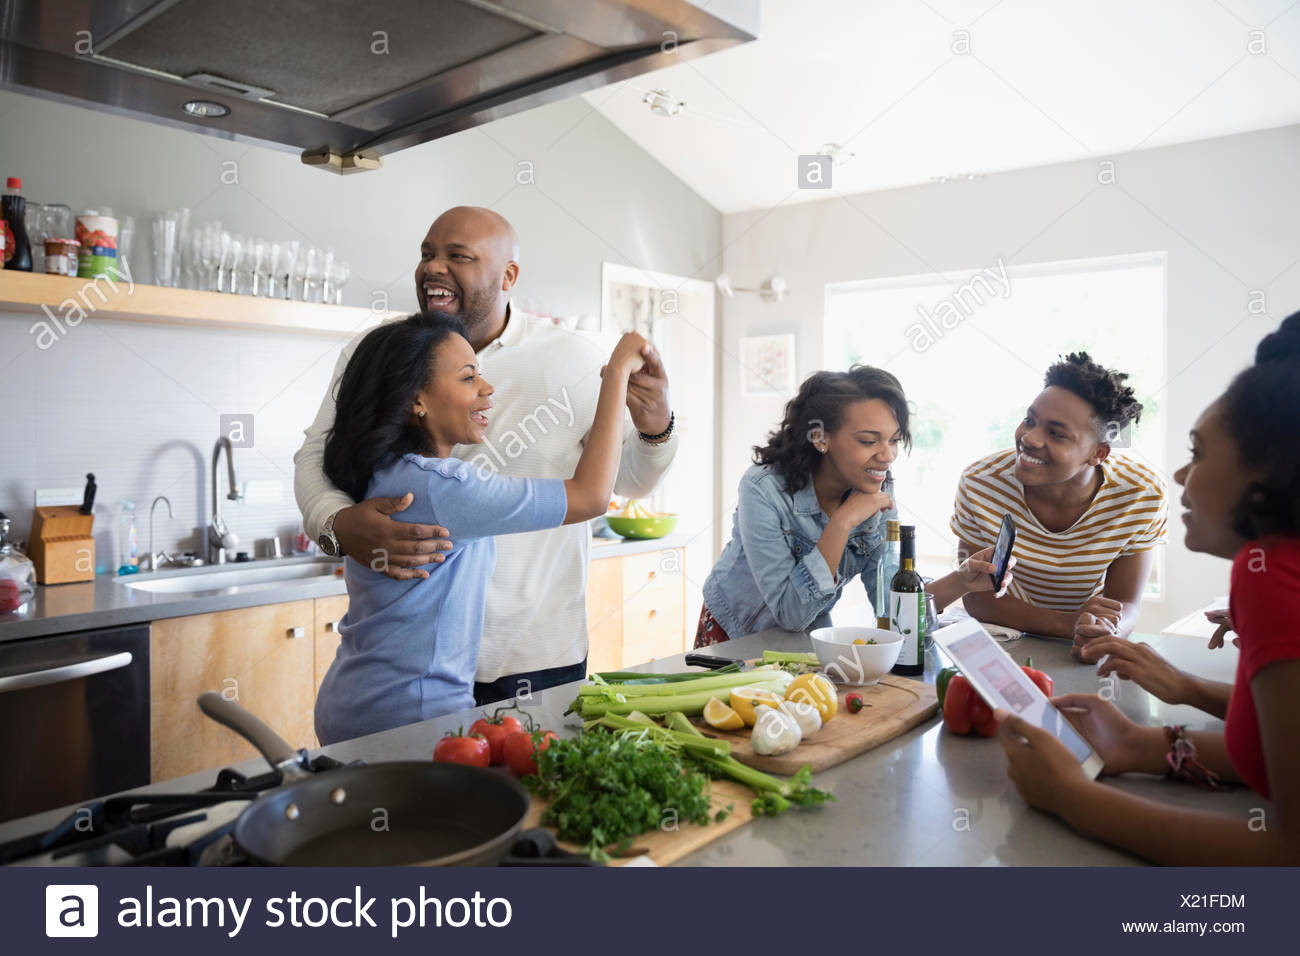 African American parents dancing and cooking with children in kitchen - Stock Image